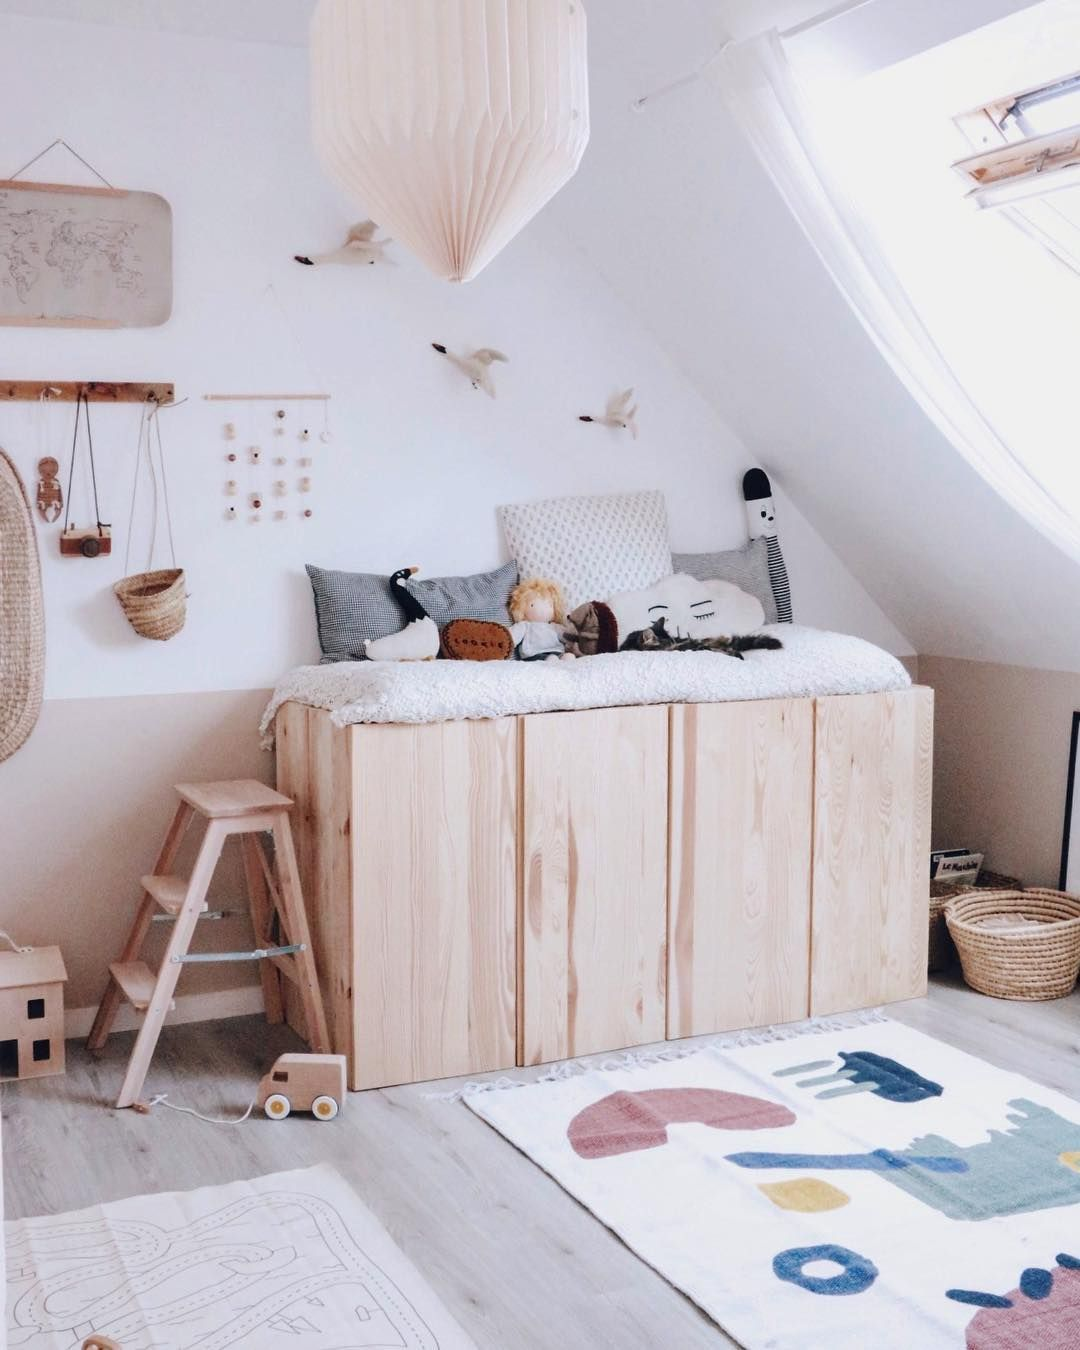 best-ikea-hacks-for-kids-changing-table-ideas-diy